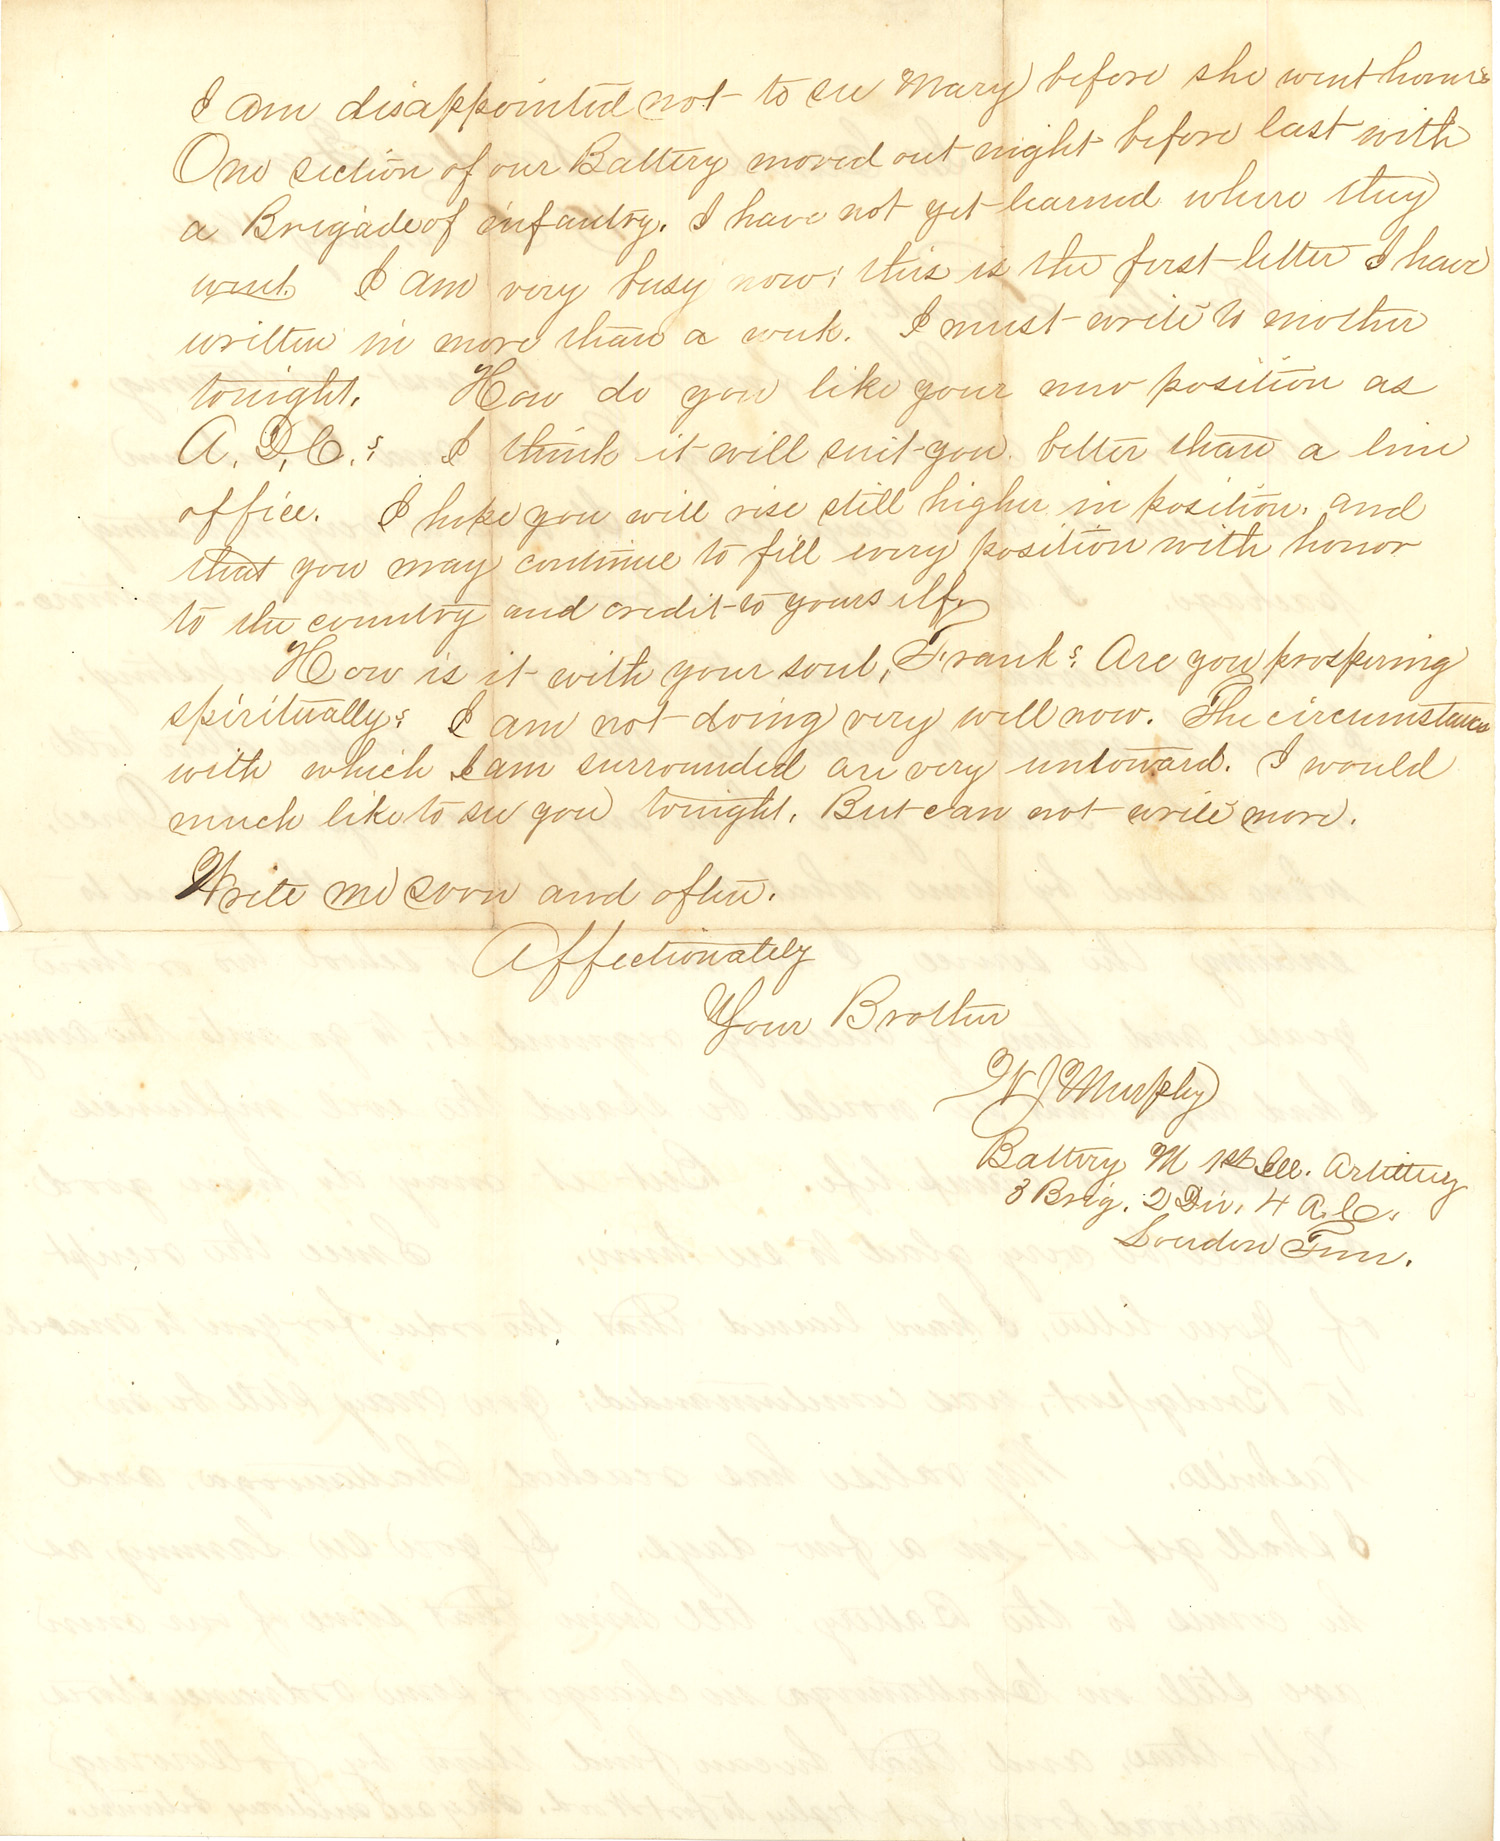 Joseph Culver Letter, February 19, 1864, Page 2